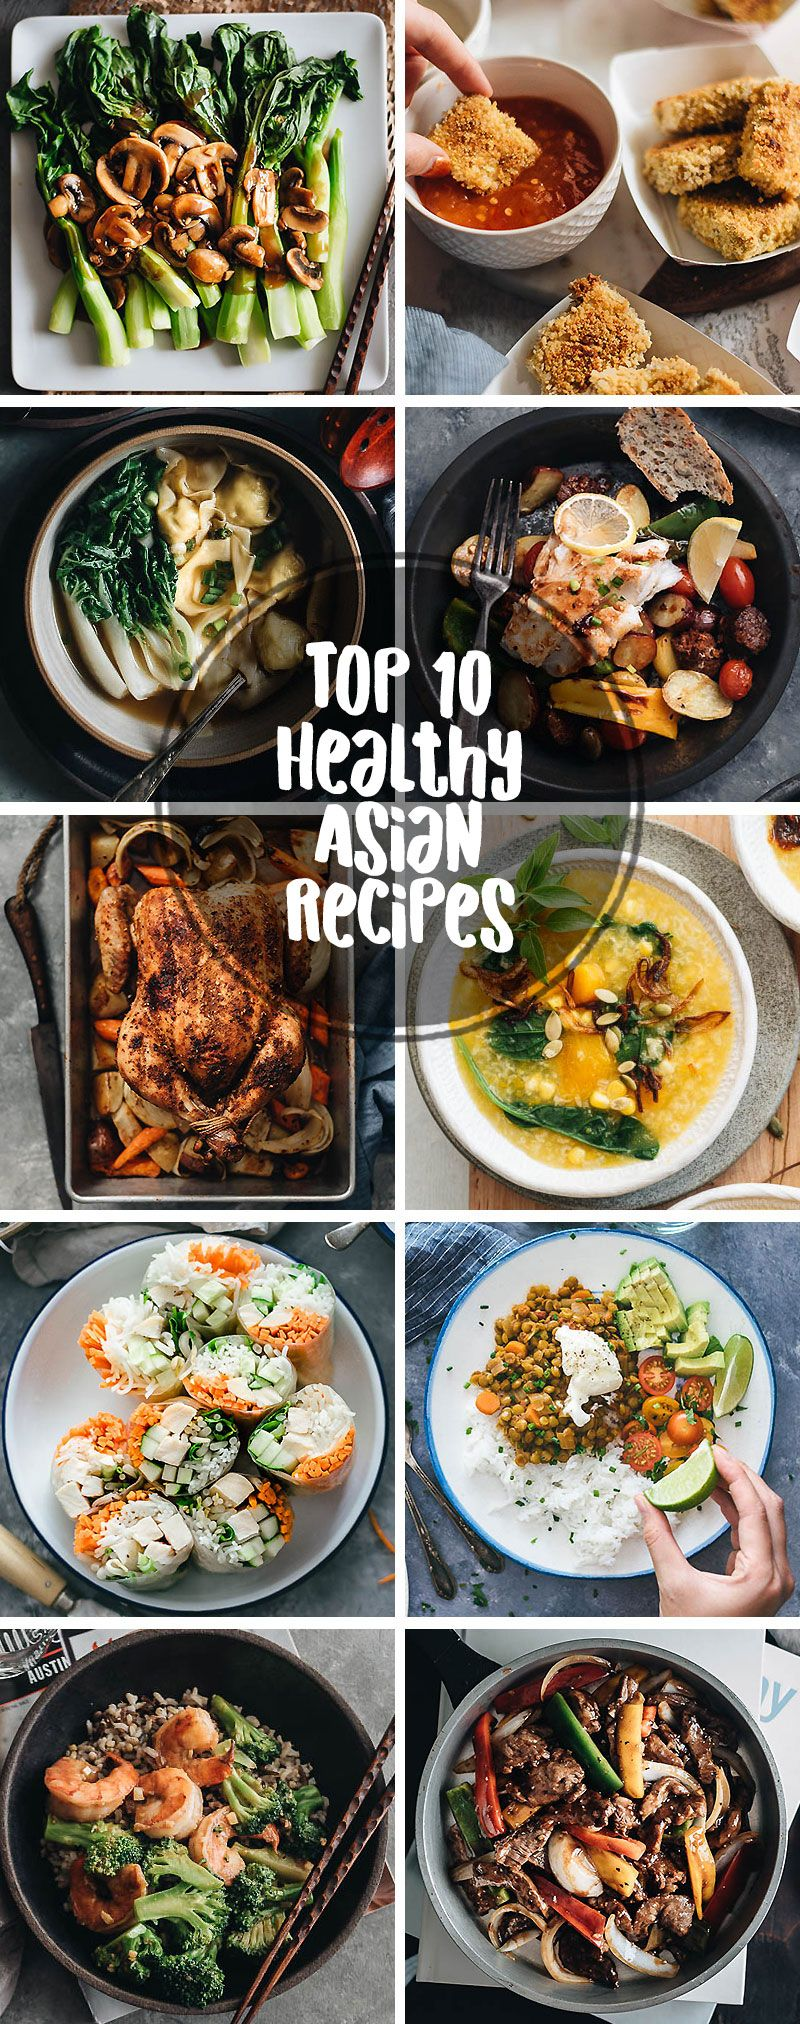 Top 10 Healthy Asian Recipes To Kick Off The New Year Healthy Asian Recipes Healthy Chinese Recipes Asian Recipes